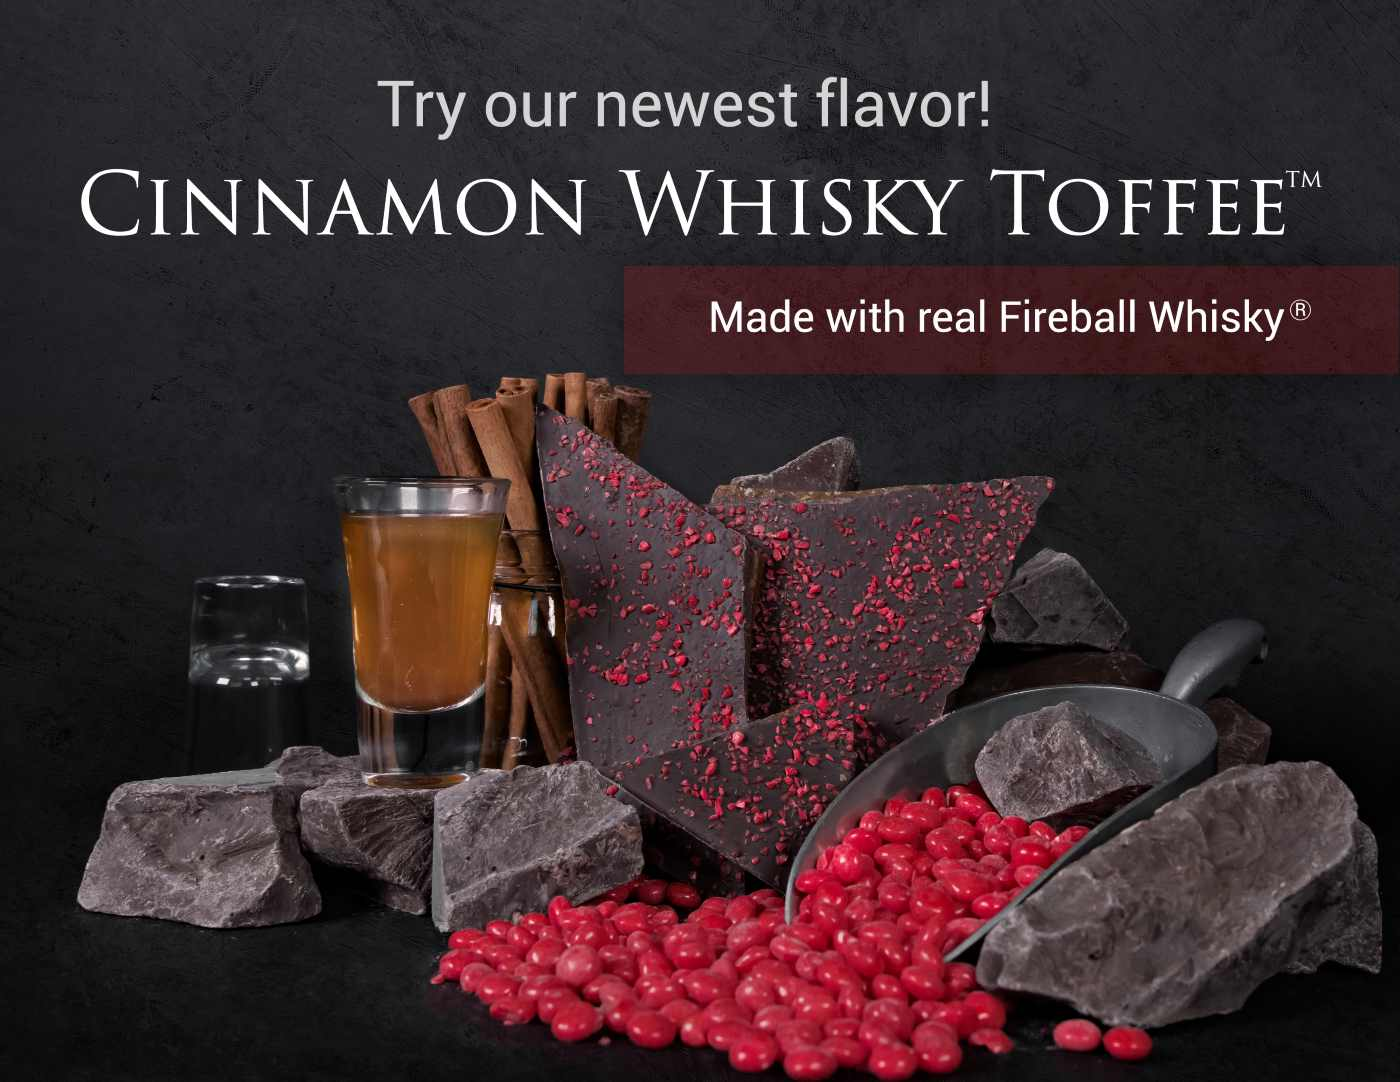 Cinnamon Whisky Toffee. The perfect gift for loved ones that like some spice!